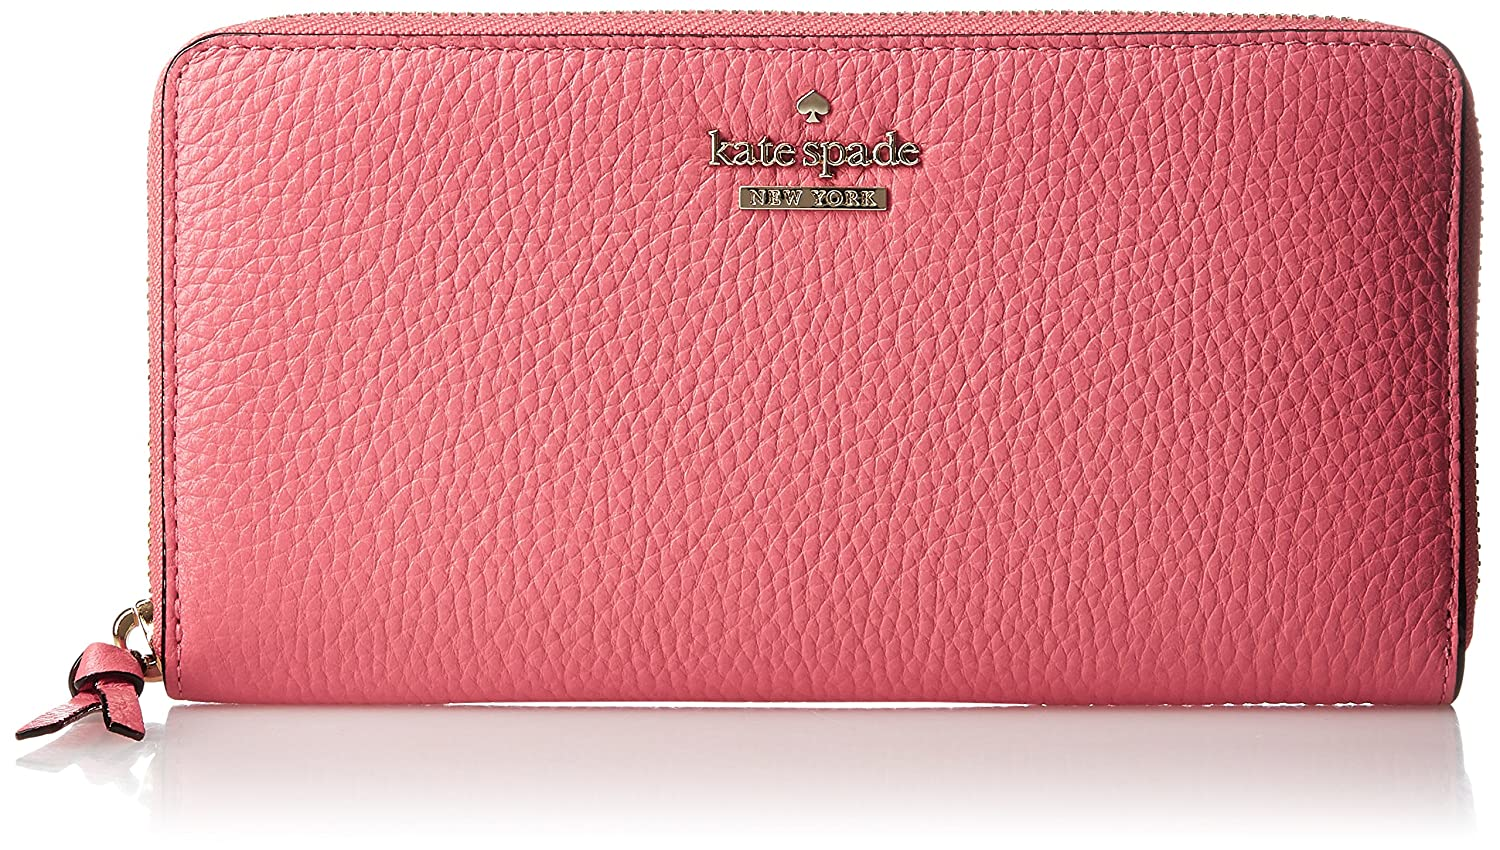 Kate Spade New York Jackson Street Lacey Wallet in Warm Guava PWRU5596